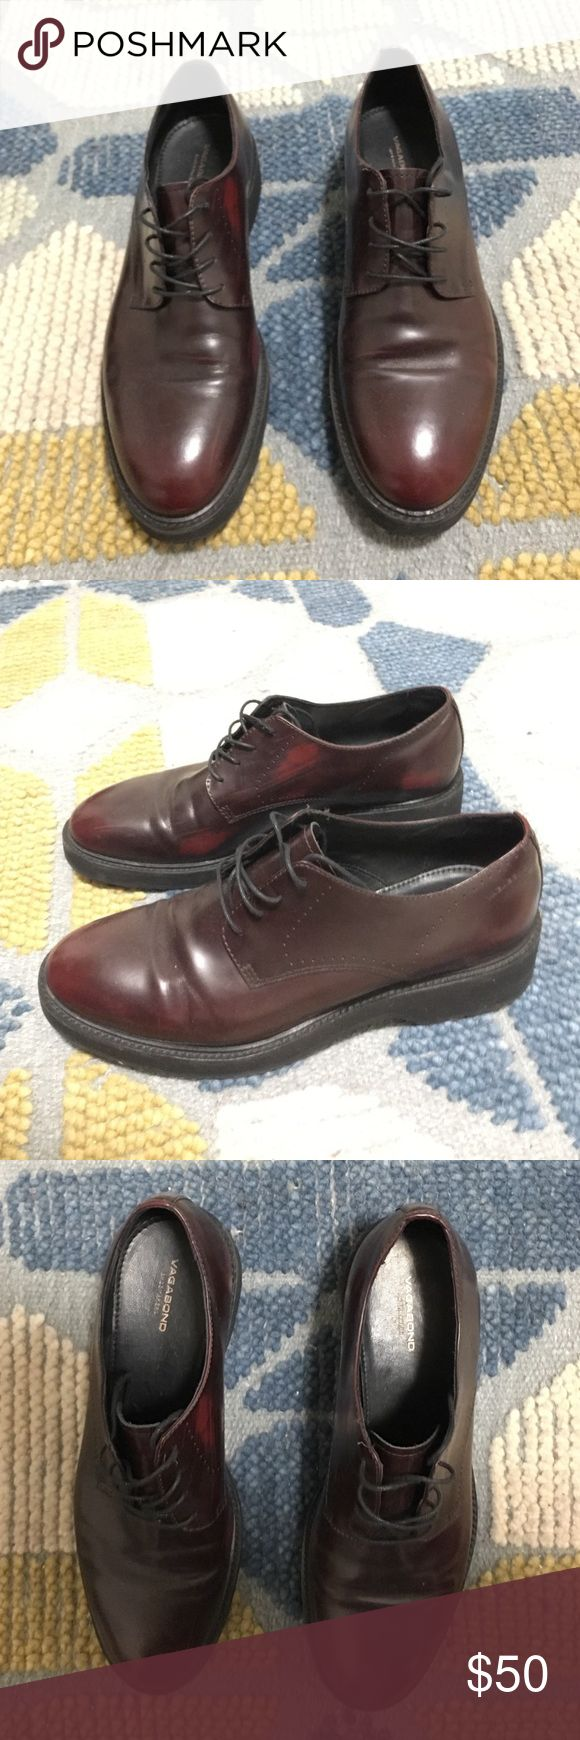 Vagabond shoes Maroon vagabond shoes size 41. Slight scuffs on insides of them but removable with a maroon shoe wax. Fits like a 10 Shoes Flats & Loafers